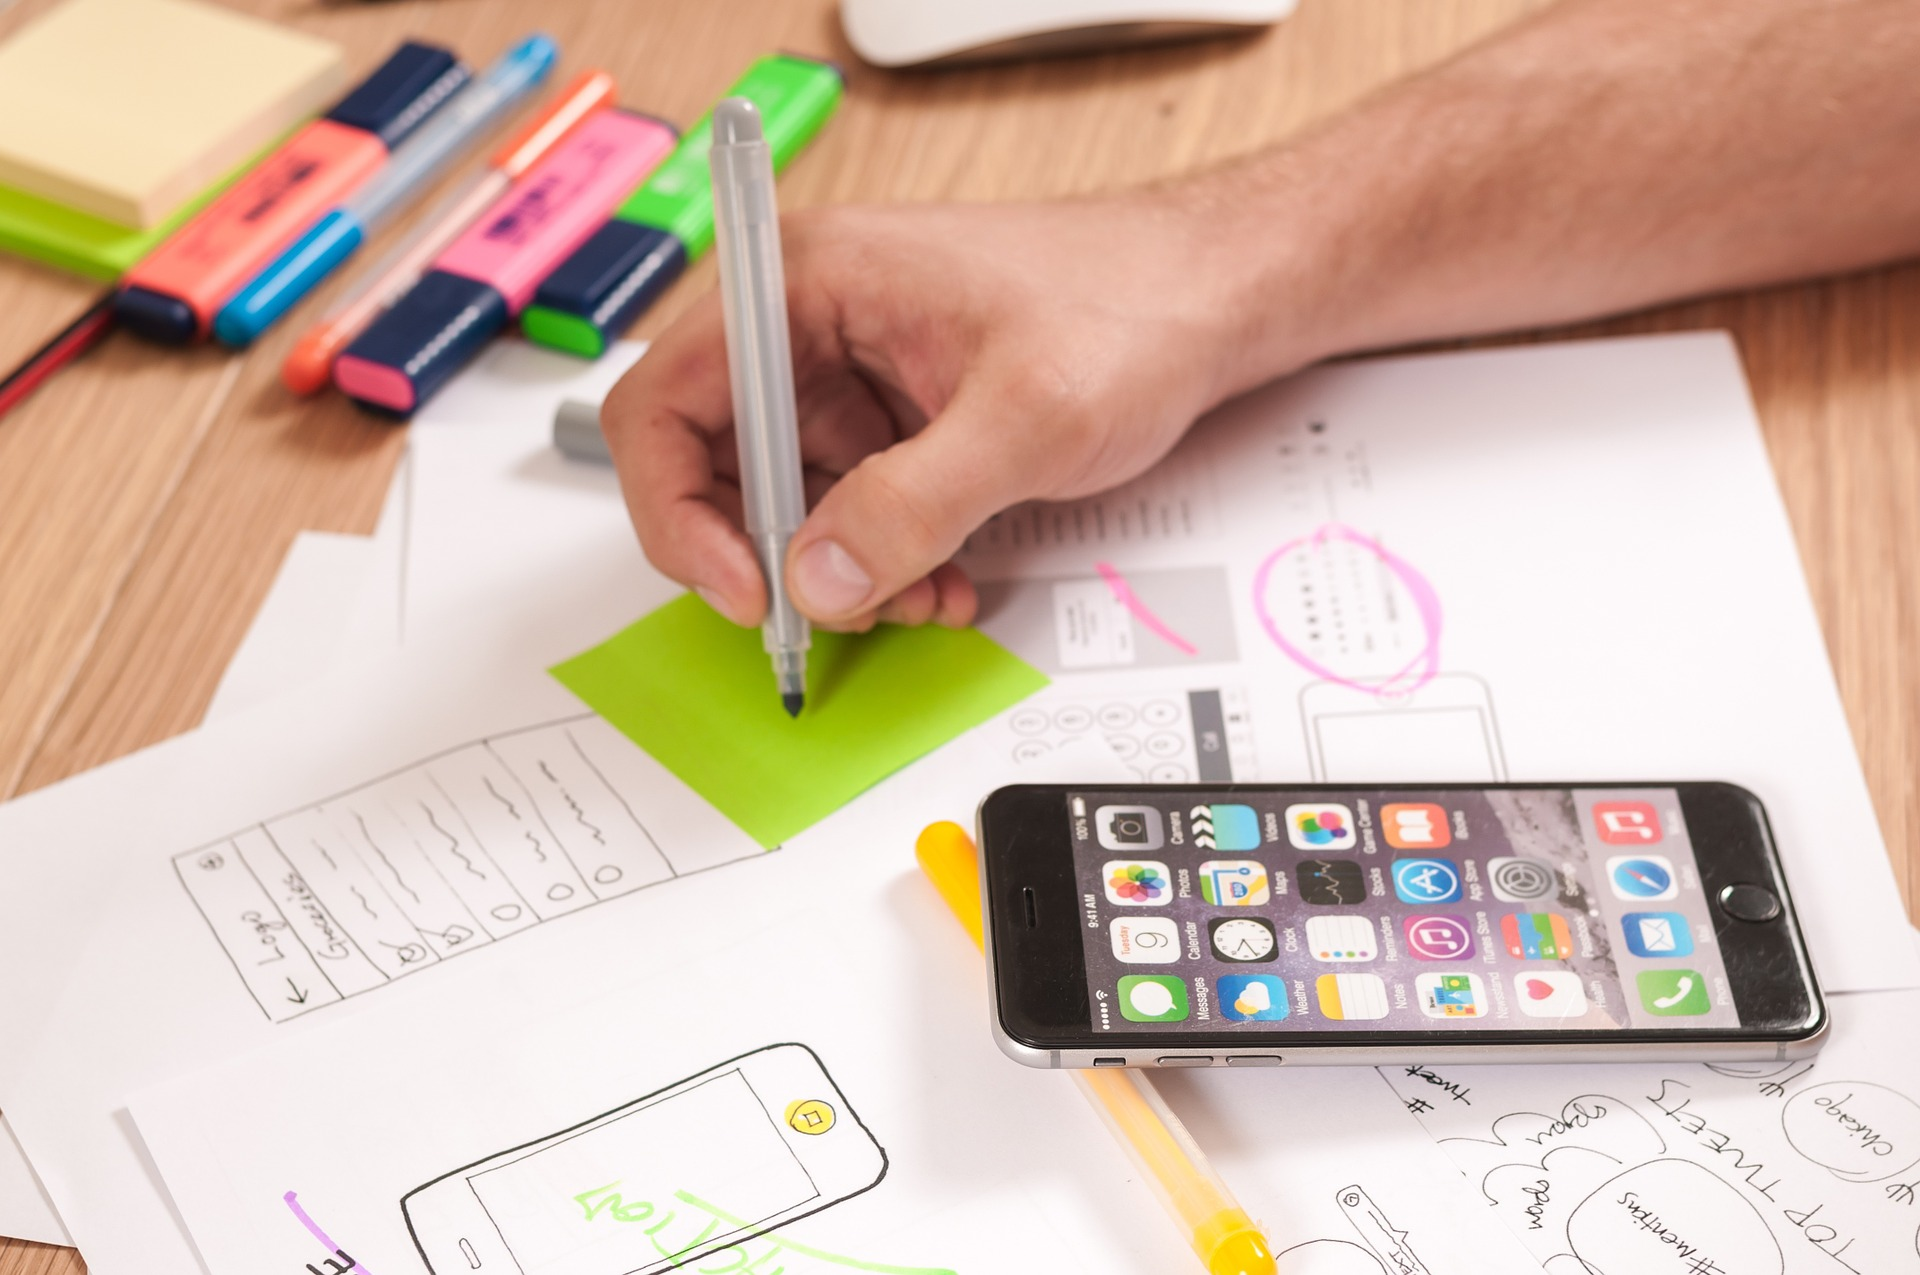 The importance of UX design consistency